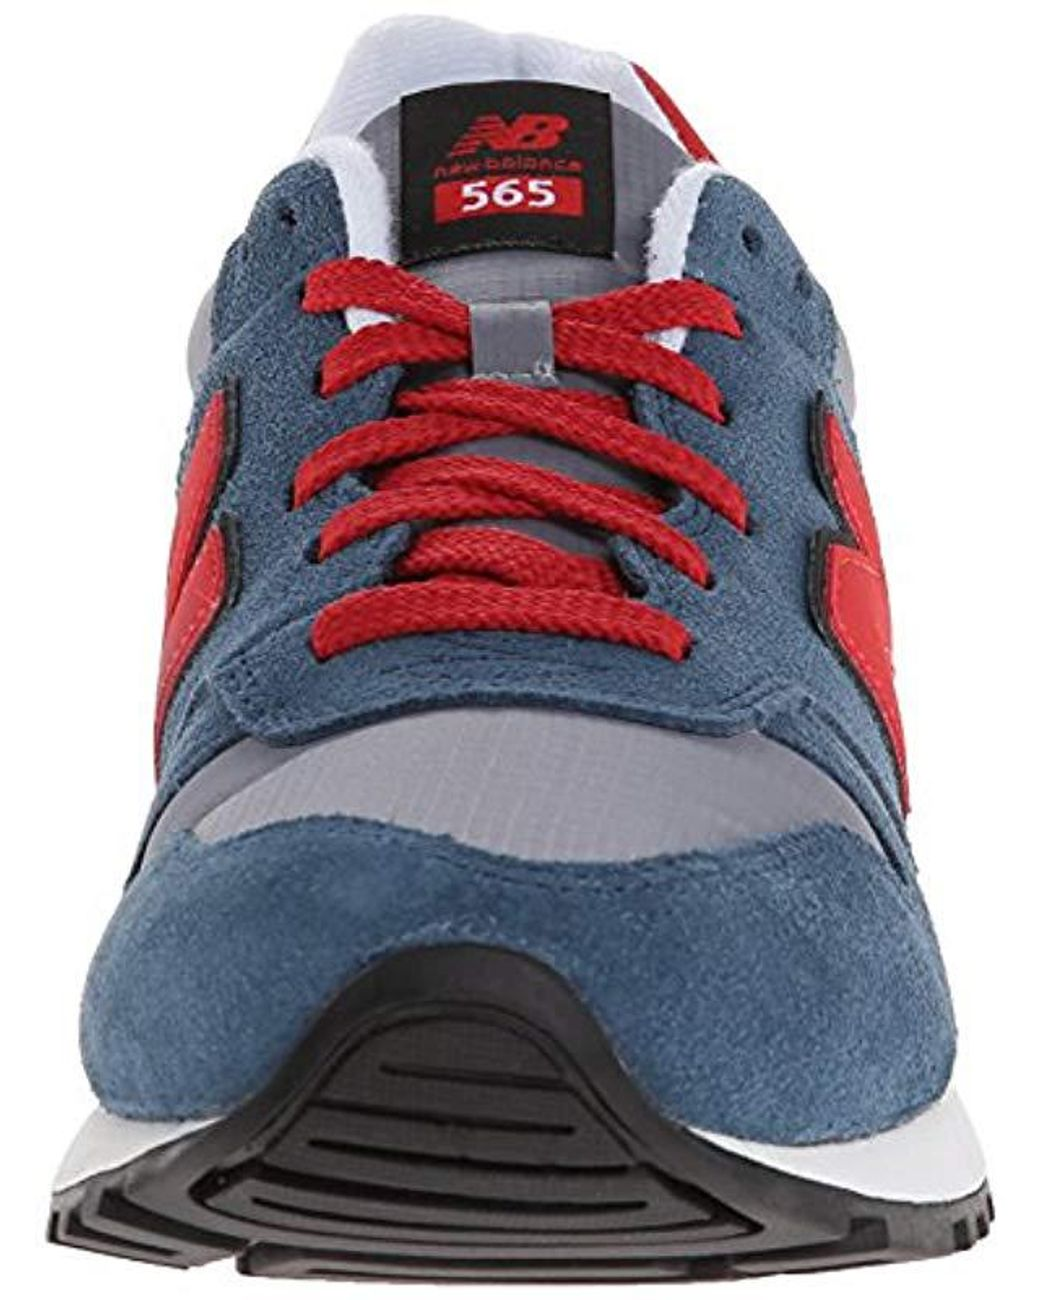 ee6dc23149c0d New Balance Rip-stop Mesh 565, Trainers in Blue for Men - Lyst